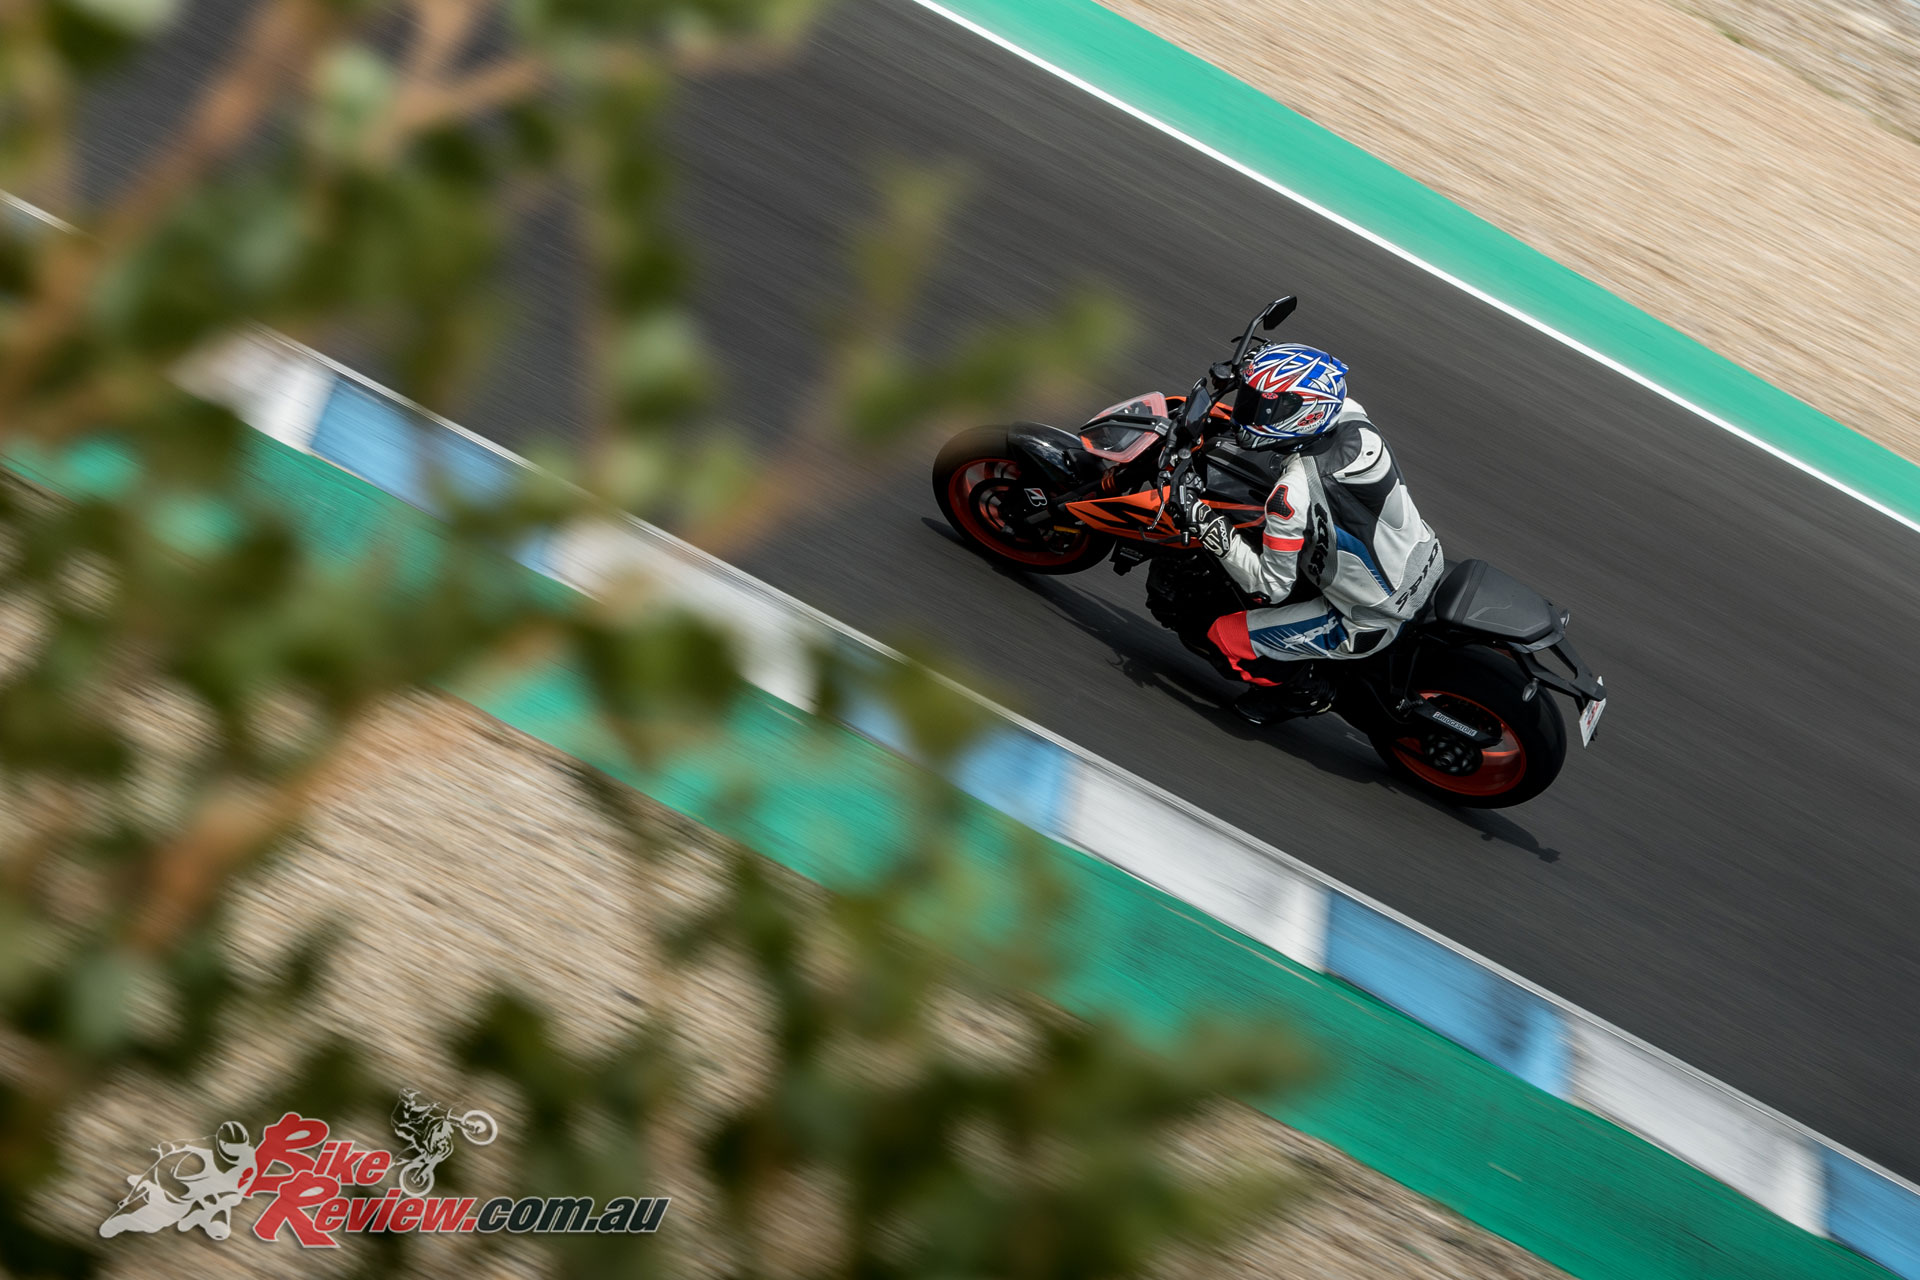 Jerez offered the opportunity to properly test the new Bridgestone Battlax S22, with wet, drying and dry conditions